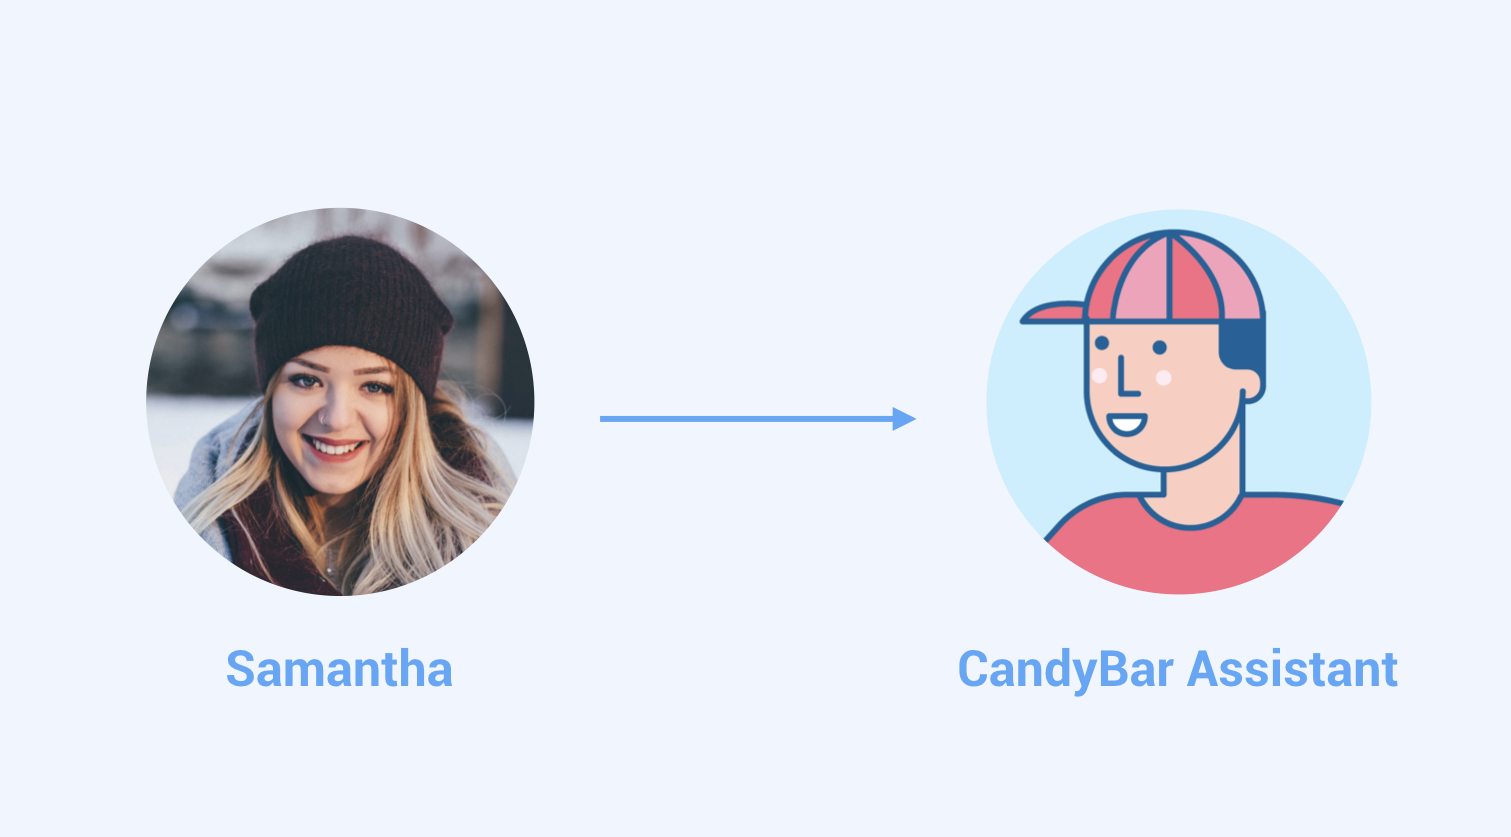 candybar-assistant